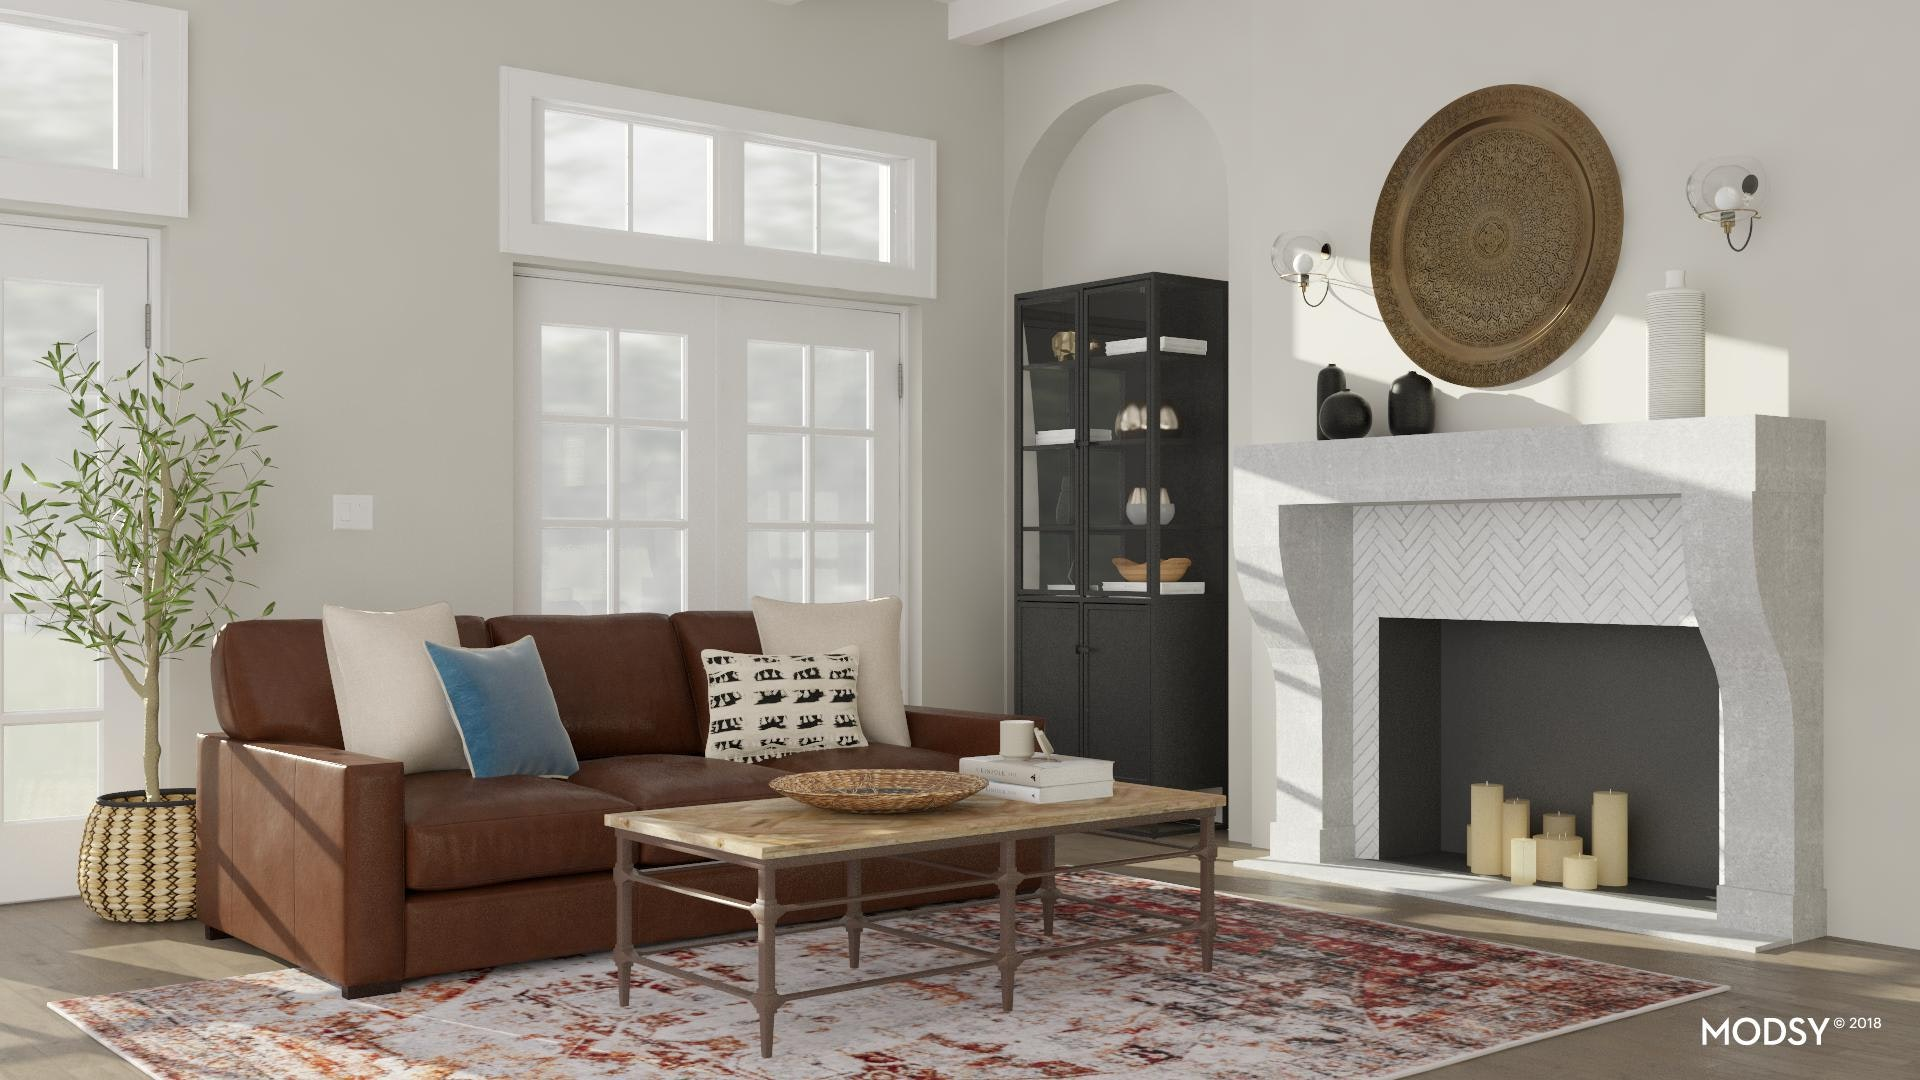 Transitional Living Room Design Ideas And Styles From Modsy